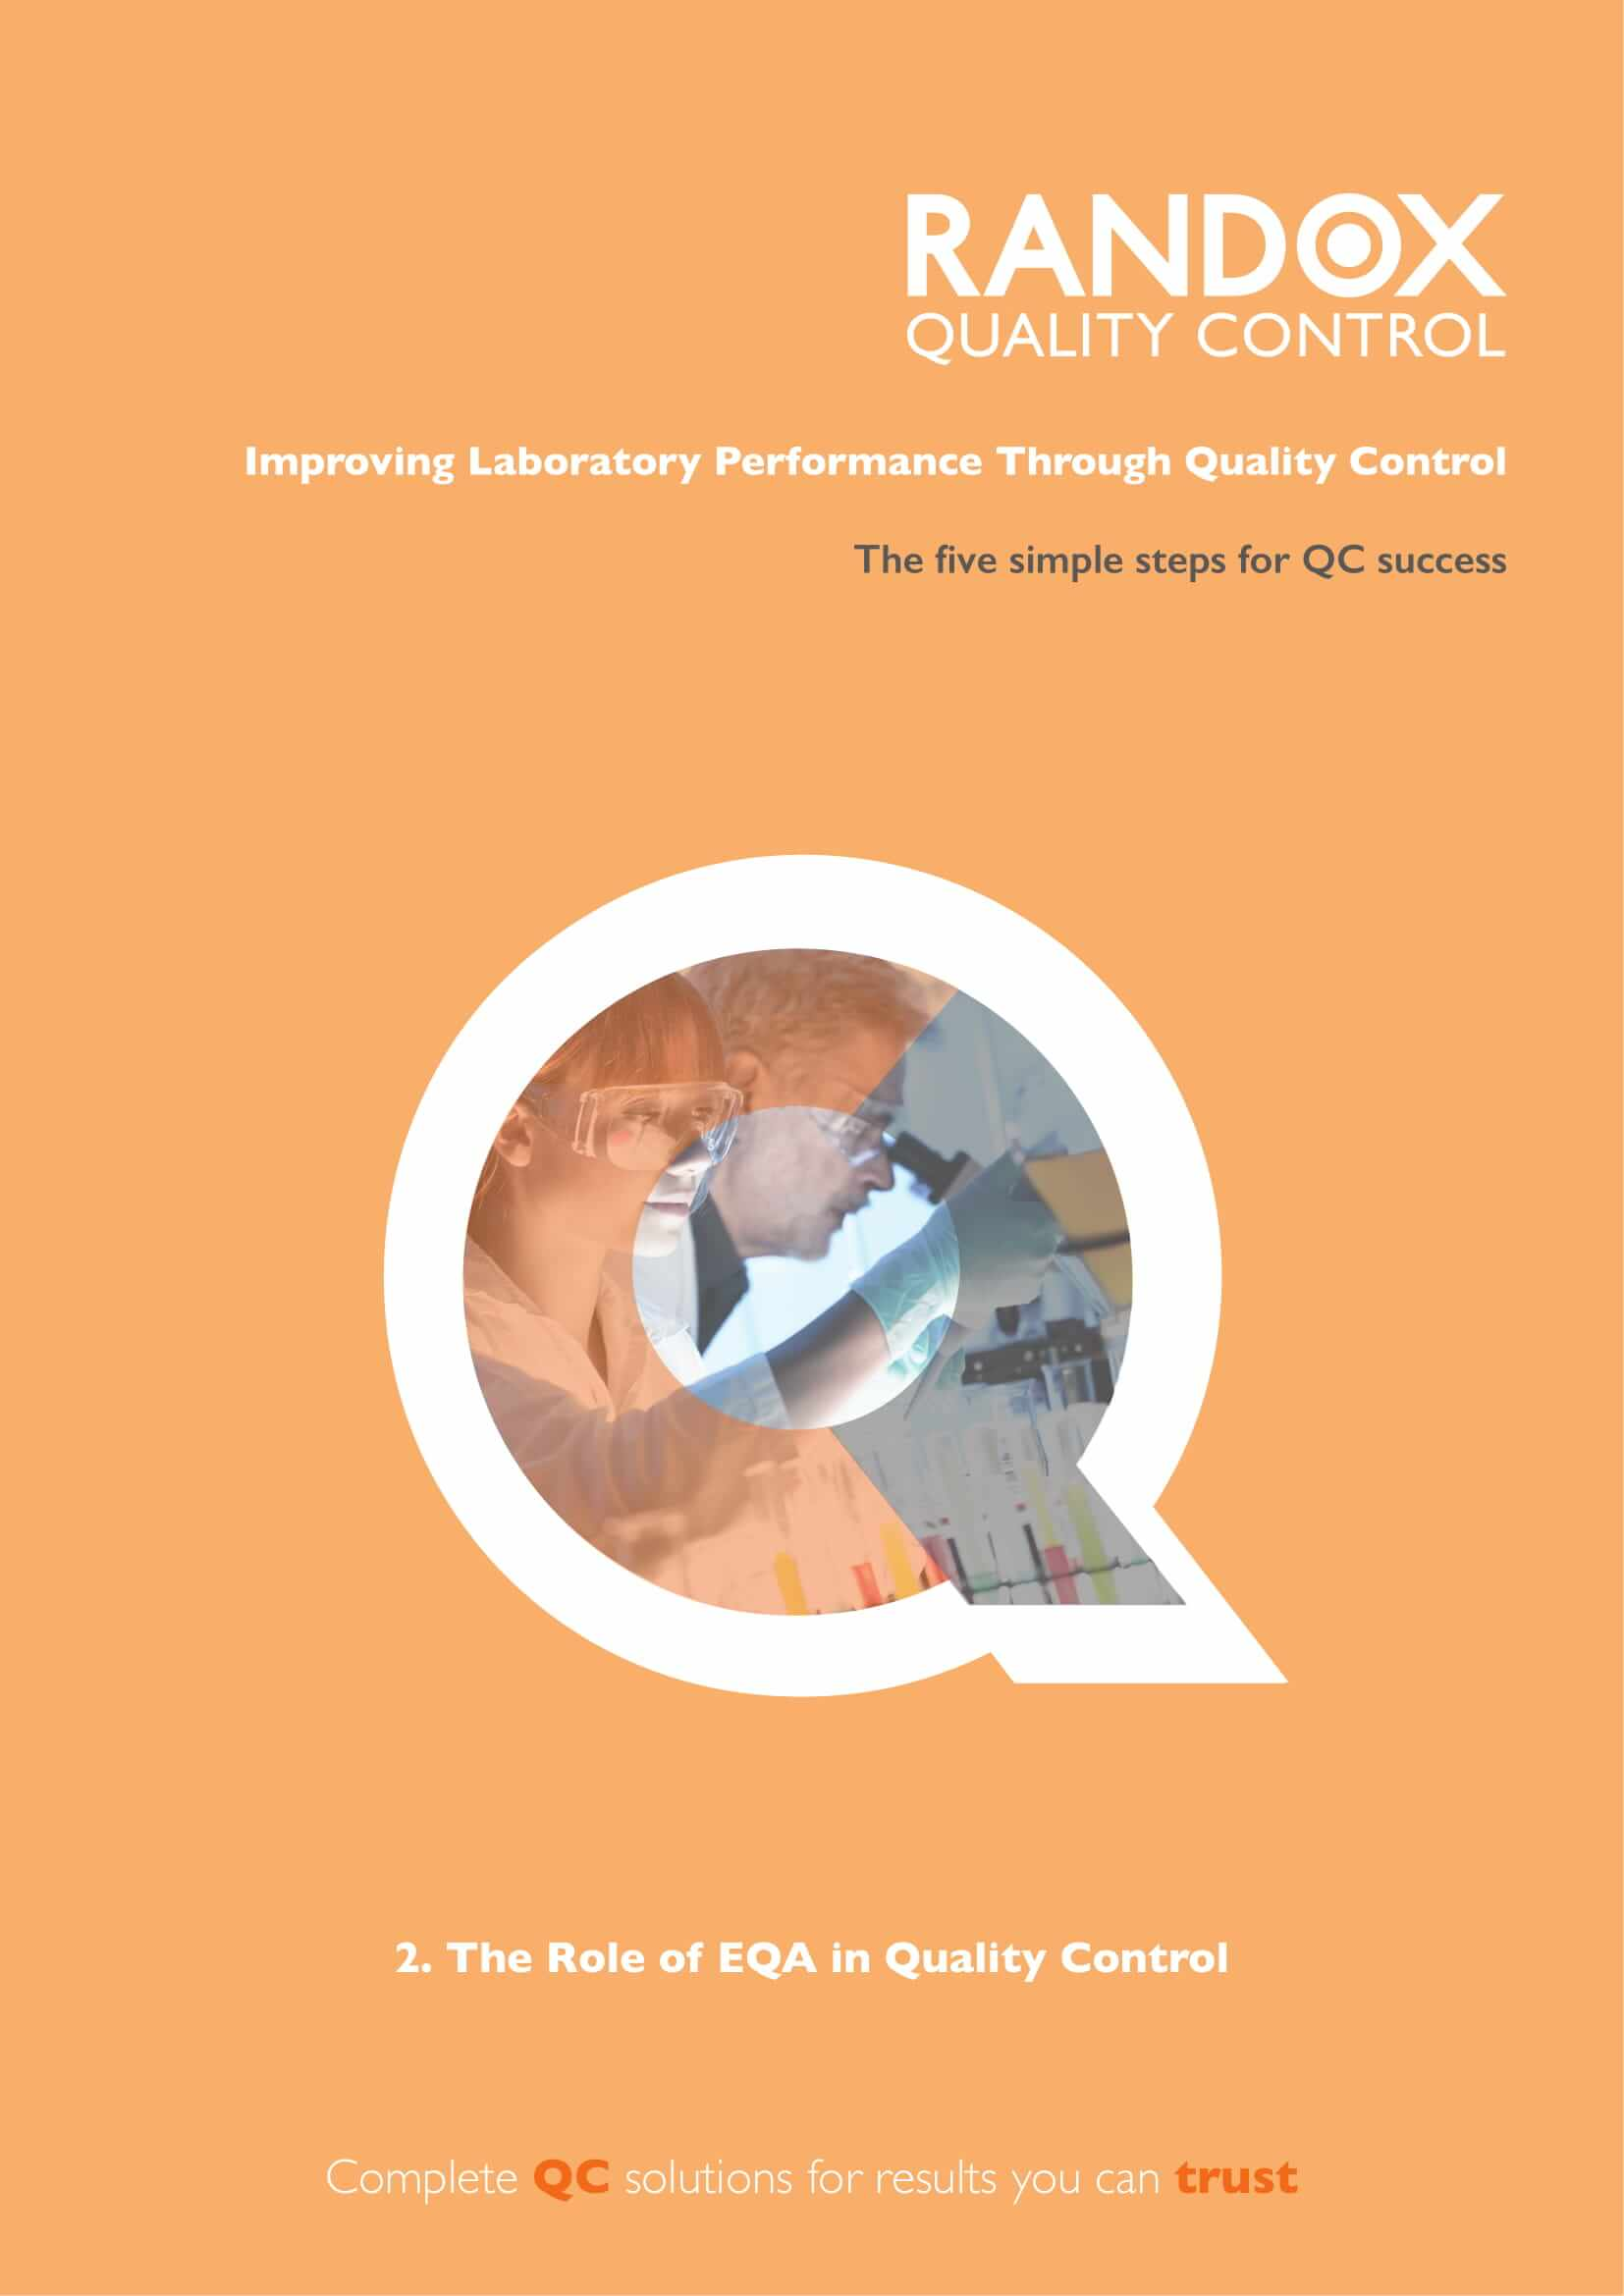 The Role of EQA in QC - Download